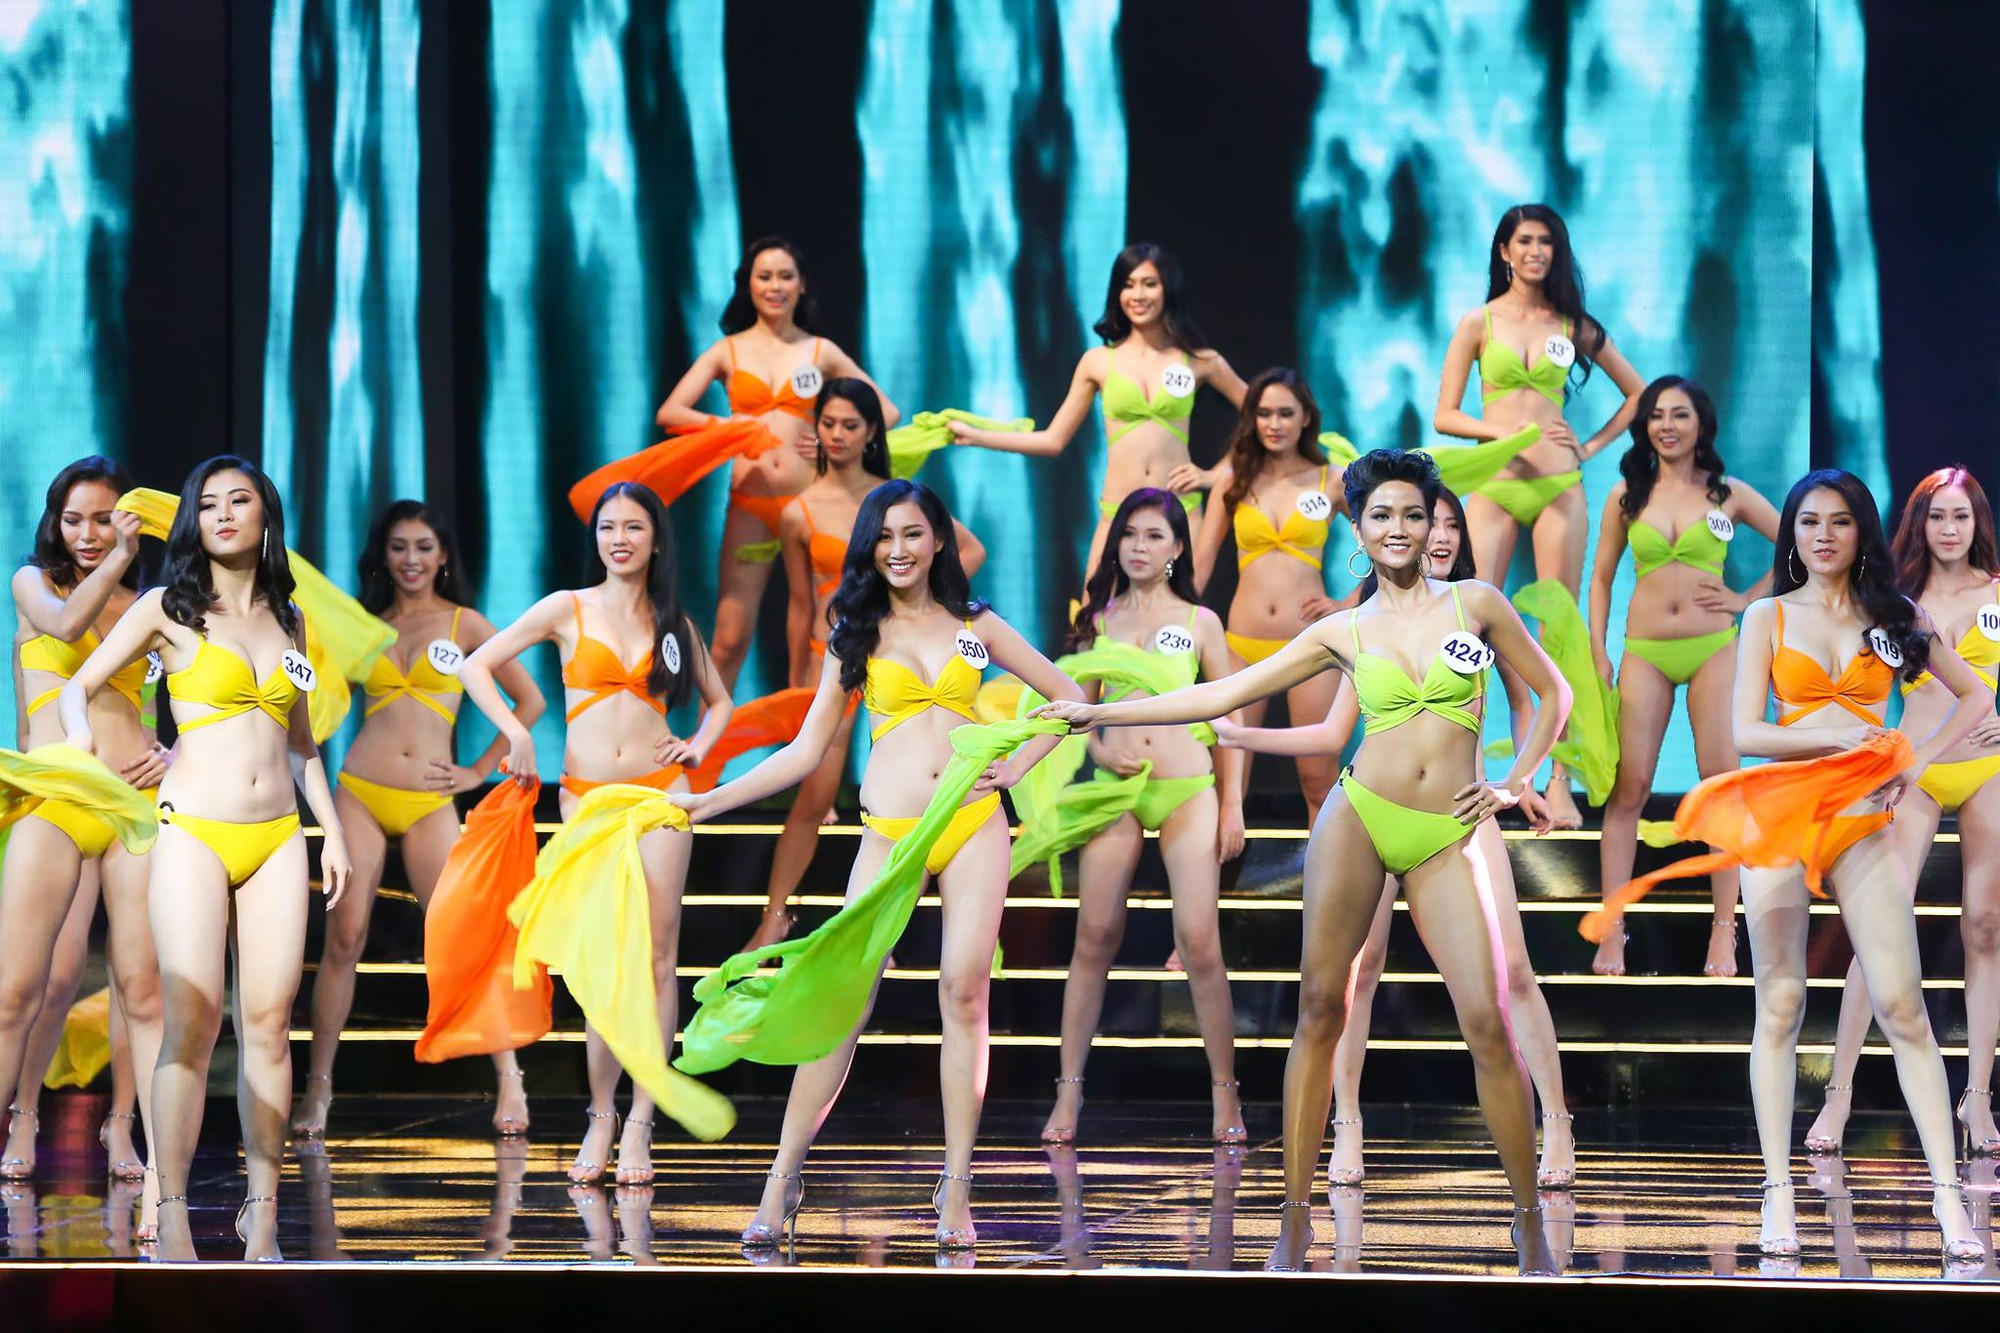 Culture ministry orders cessation of Miss Universe Vietnam amid Damrey-related criticism